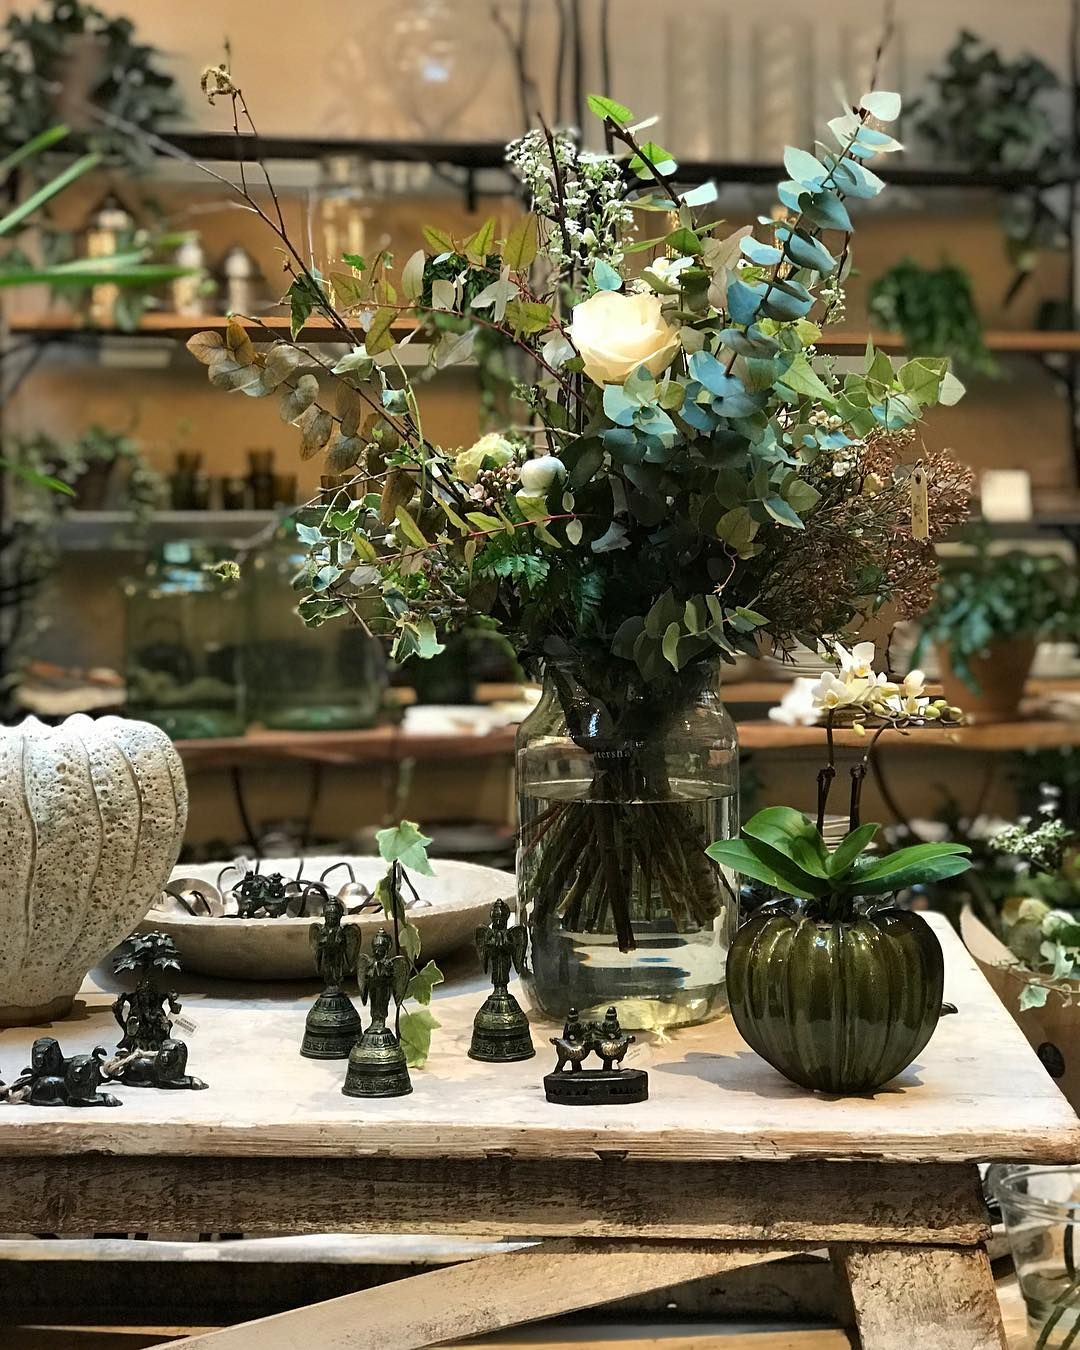 Hades Of Green In Our Covent Garden Shop Abundant With Specialist Indoor Plants Magical Floral Displays And Handcraf Floral Display Garden Shop Indoor Plants